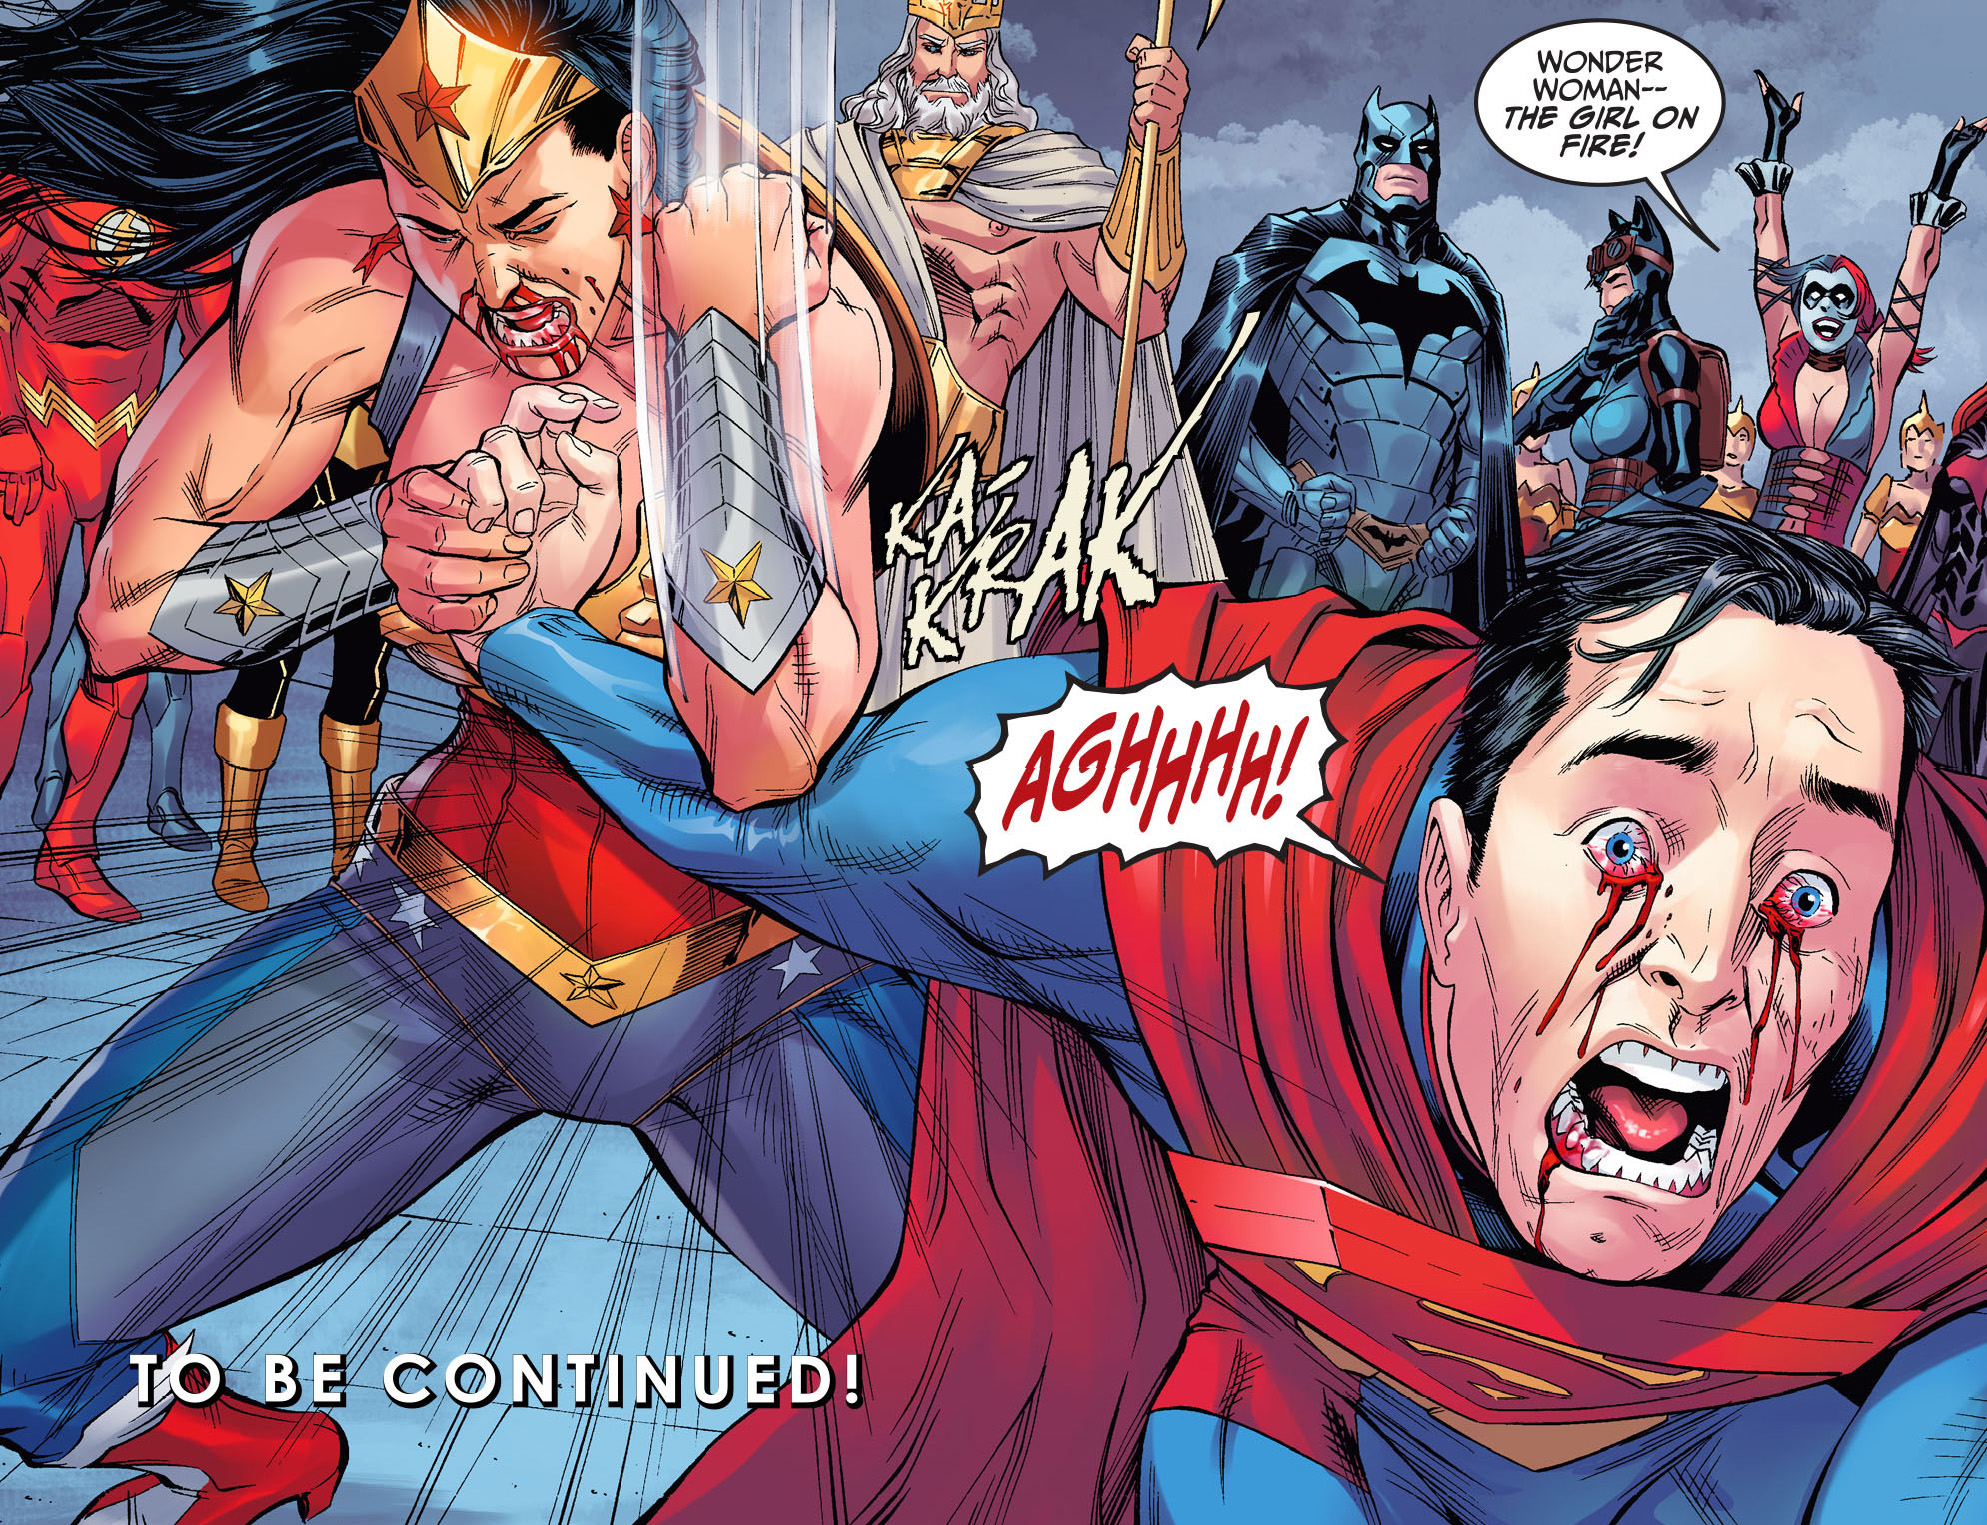 Superman VS Wonder Woman (Injustice Gods Among Us ...: https://comicnewbies.com/2015/06/23/superman-vs-wonder-woman-injustice-gods-among-us/